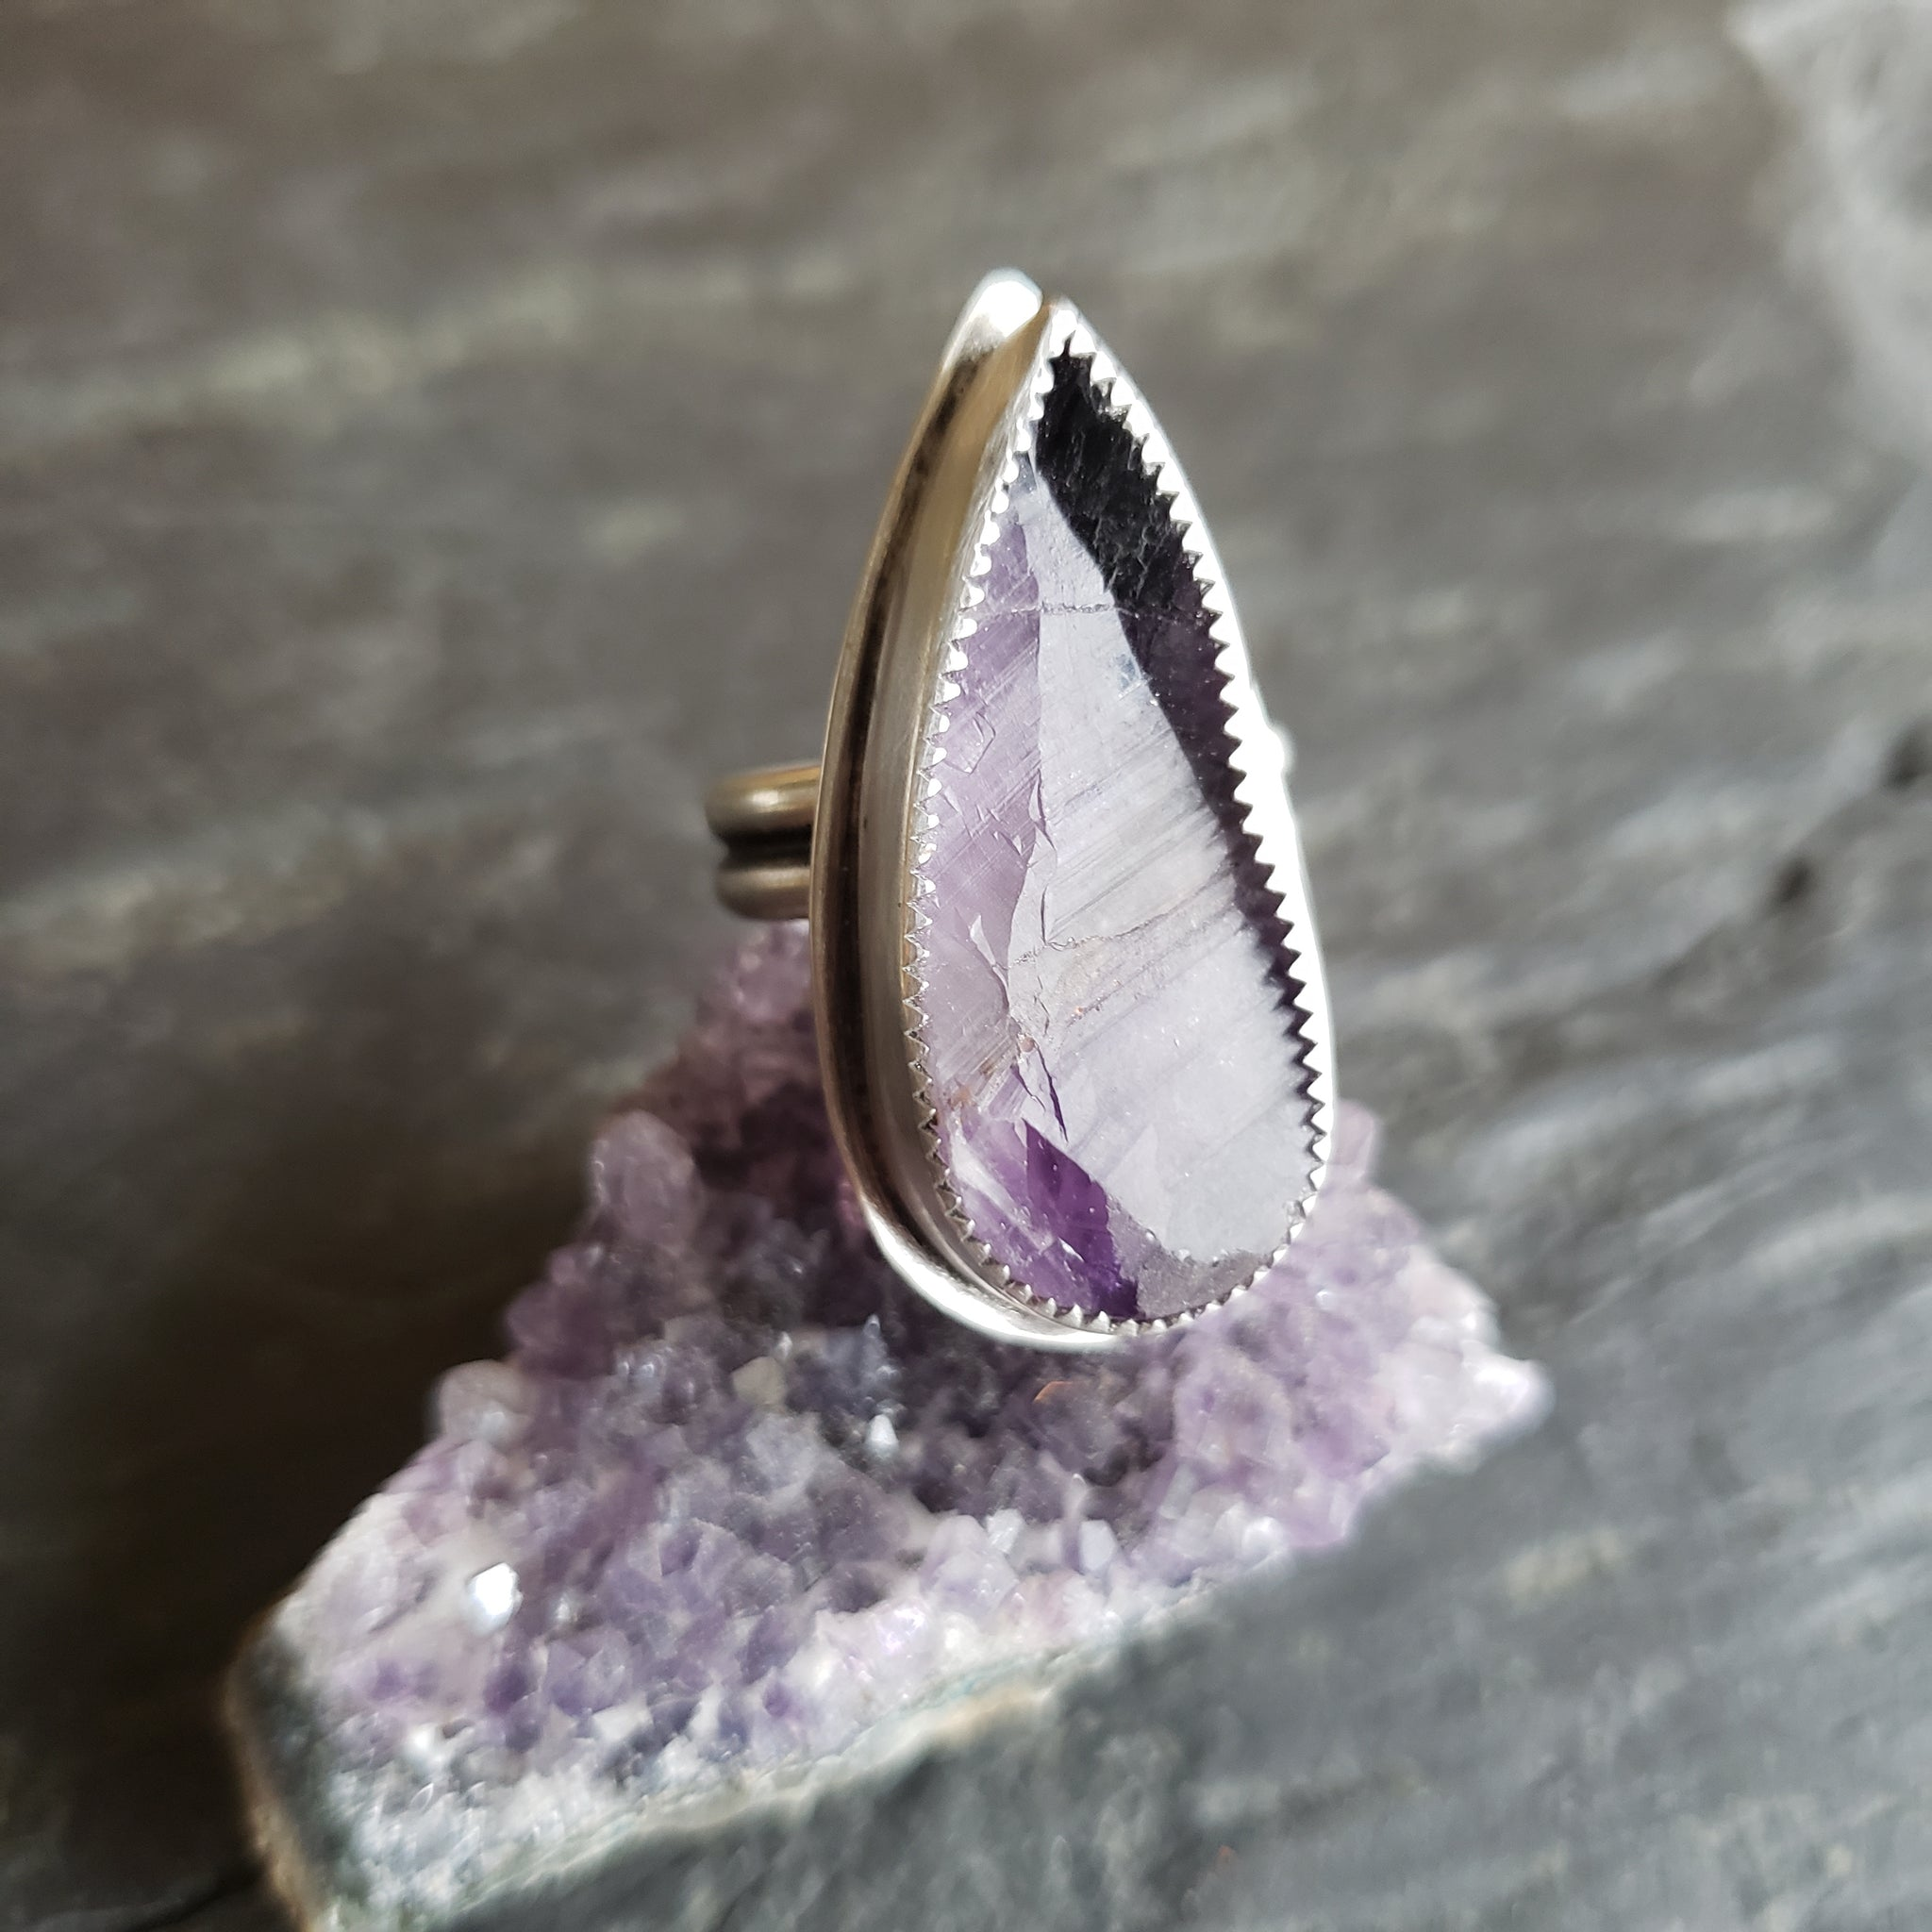 Rough Cut Amethyst Ring in Sterling Silver Size 7.25